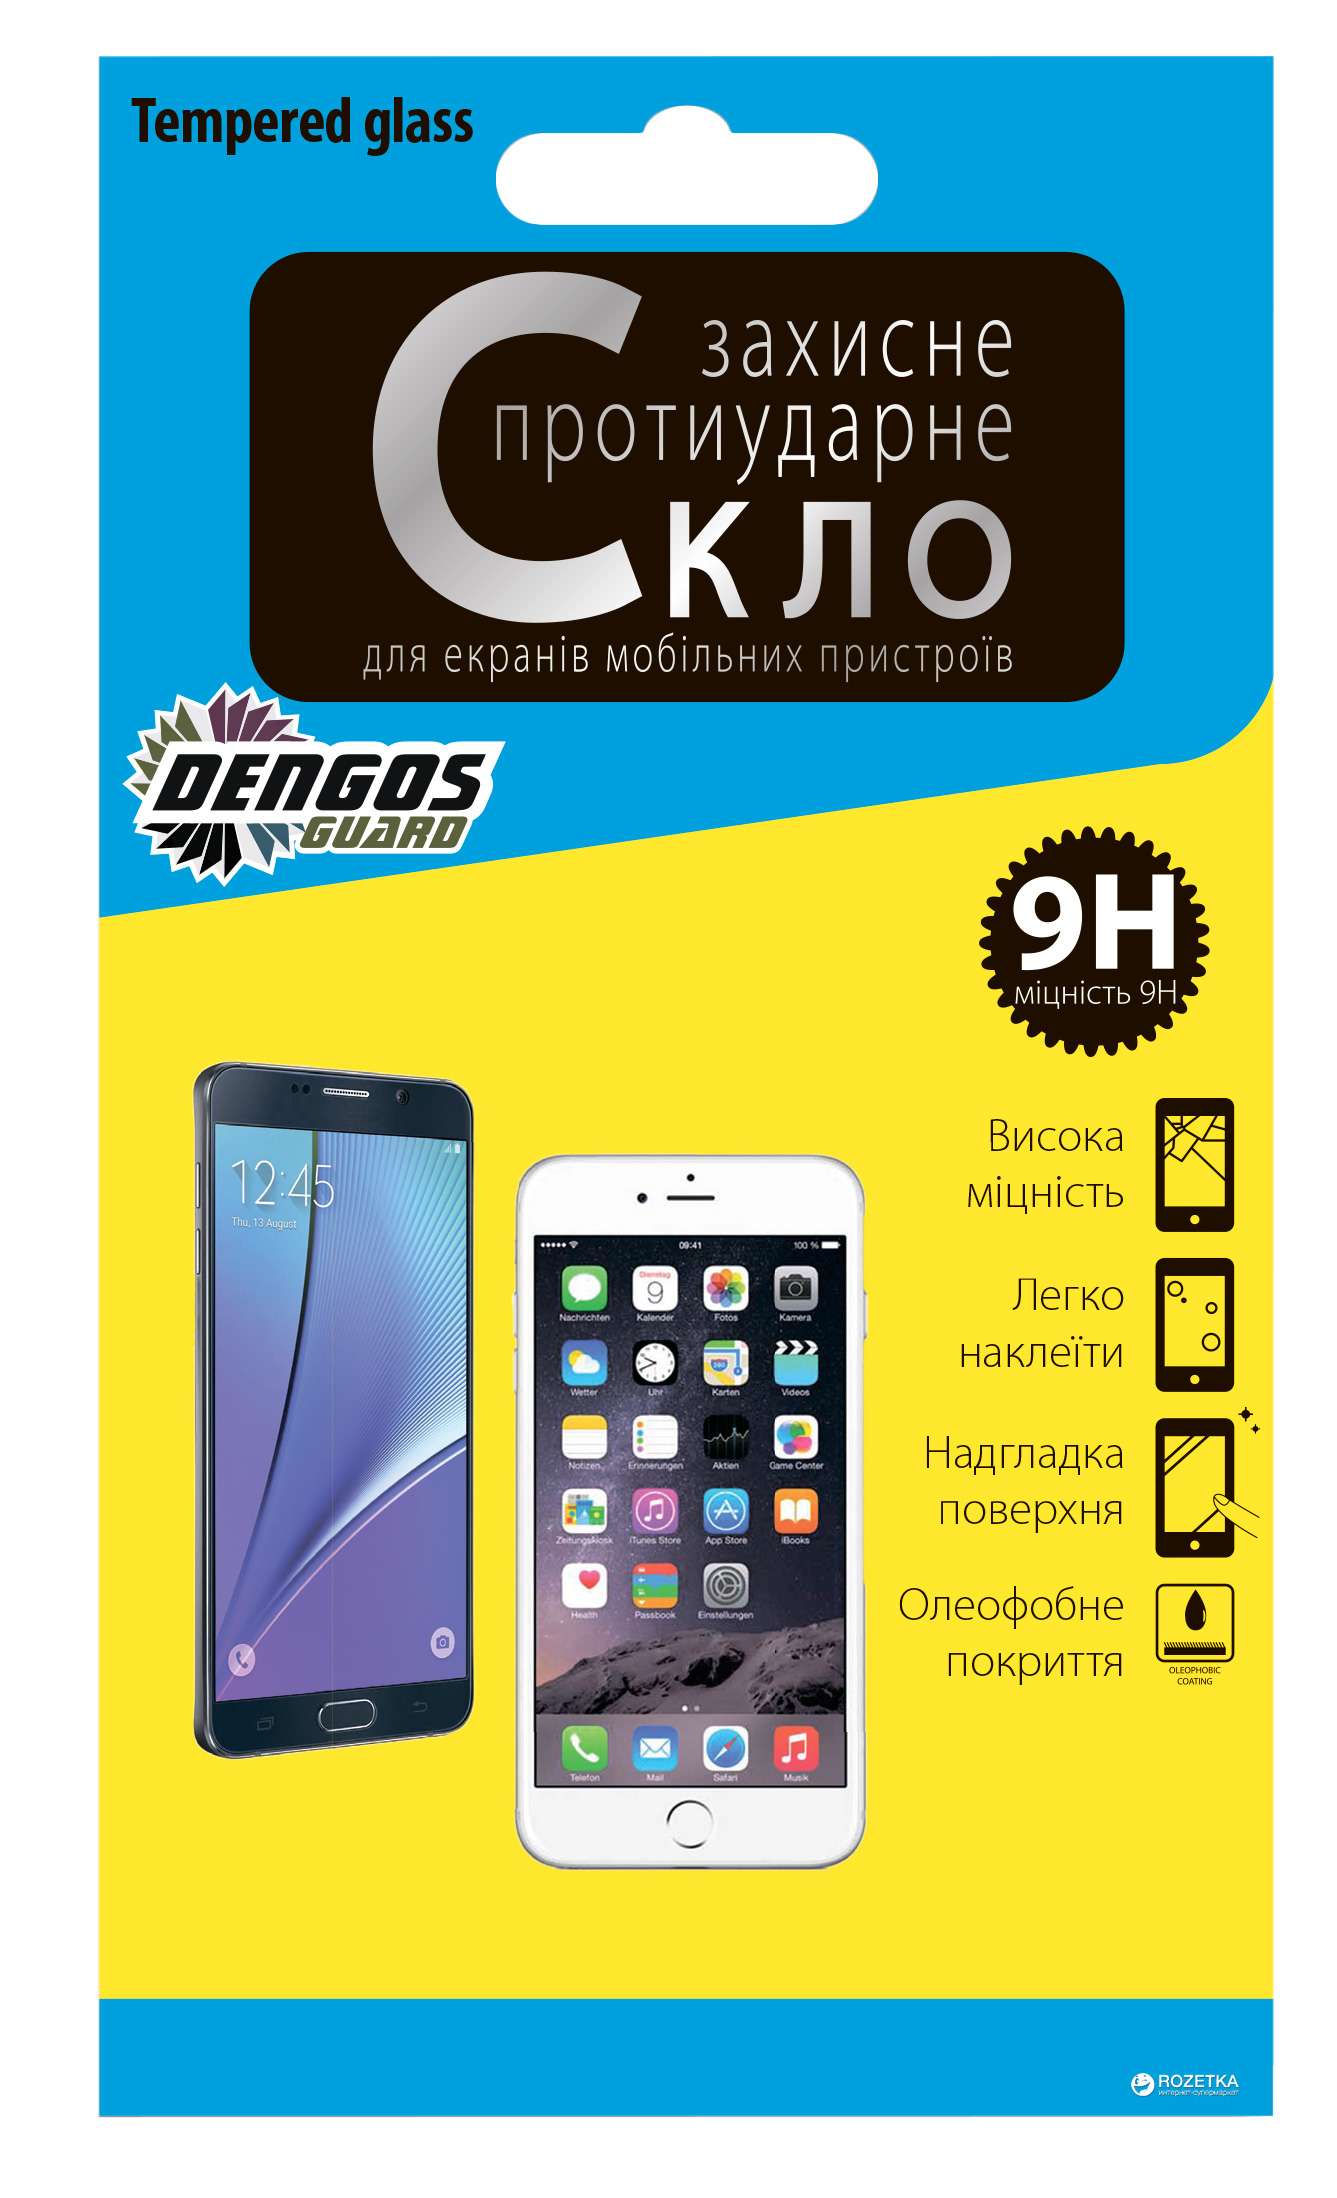 Rozetkaua Dengos Tempered Glass Xiaomi Redmi Full Cover 4x 18810232